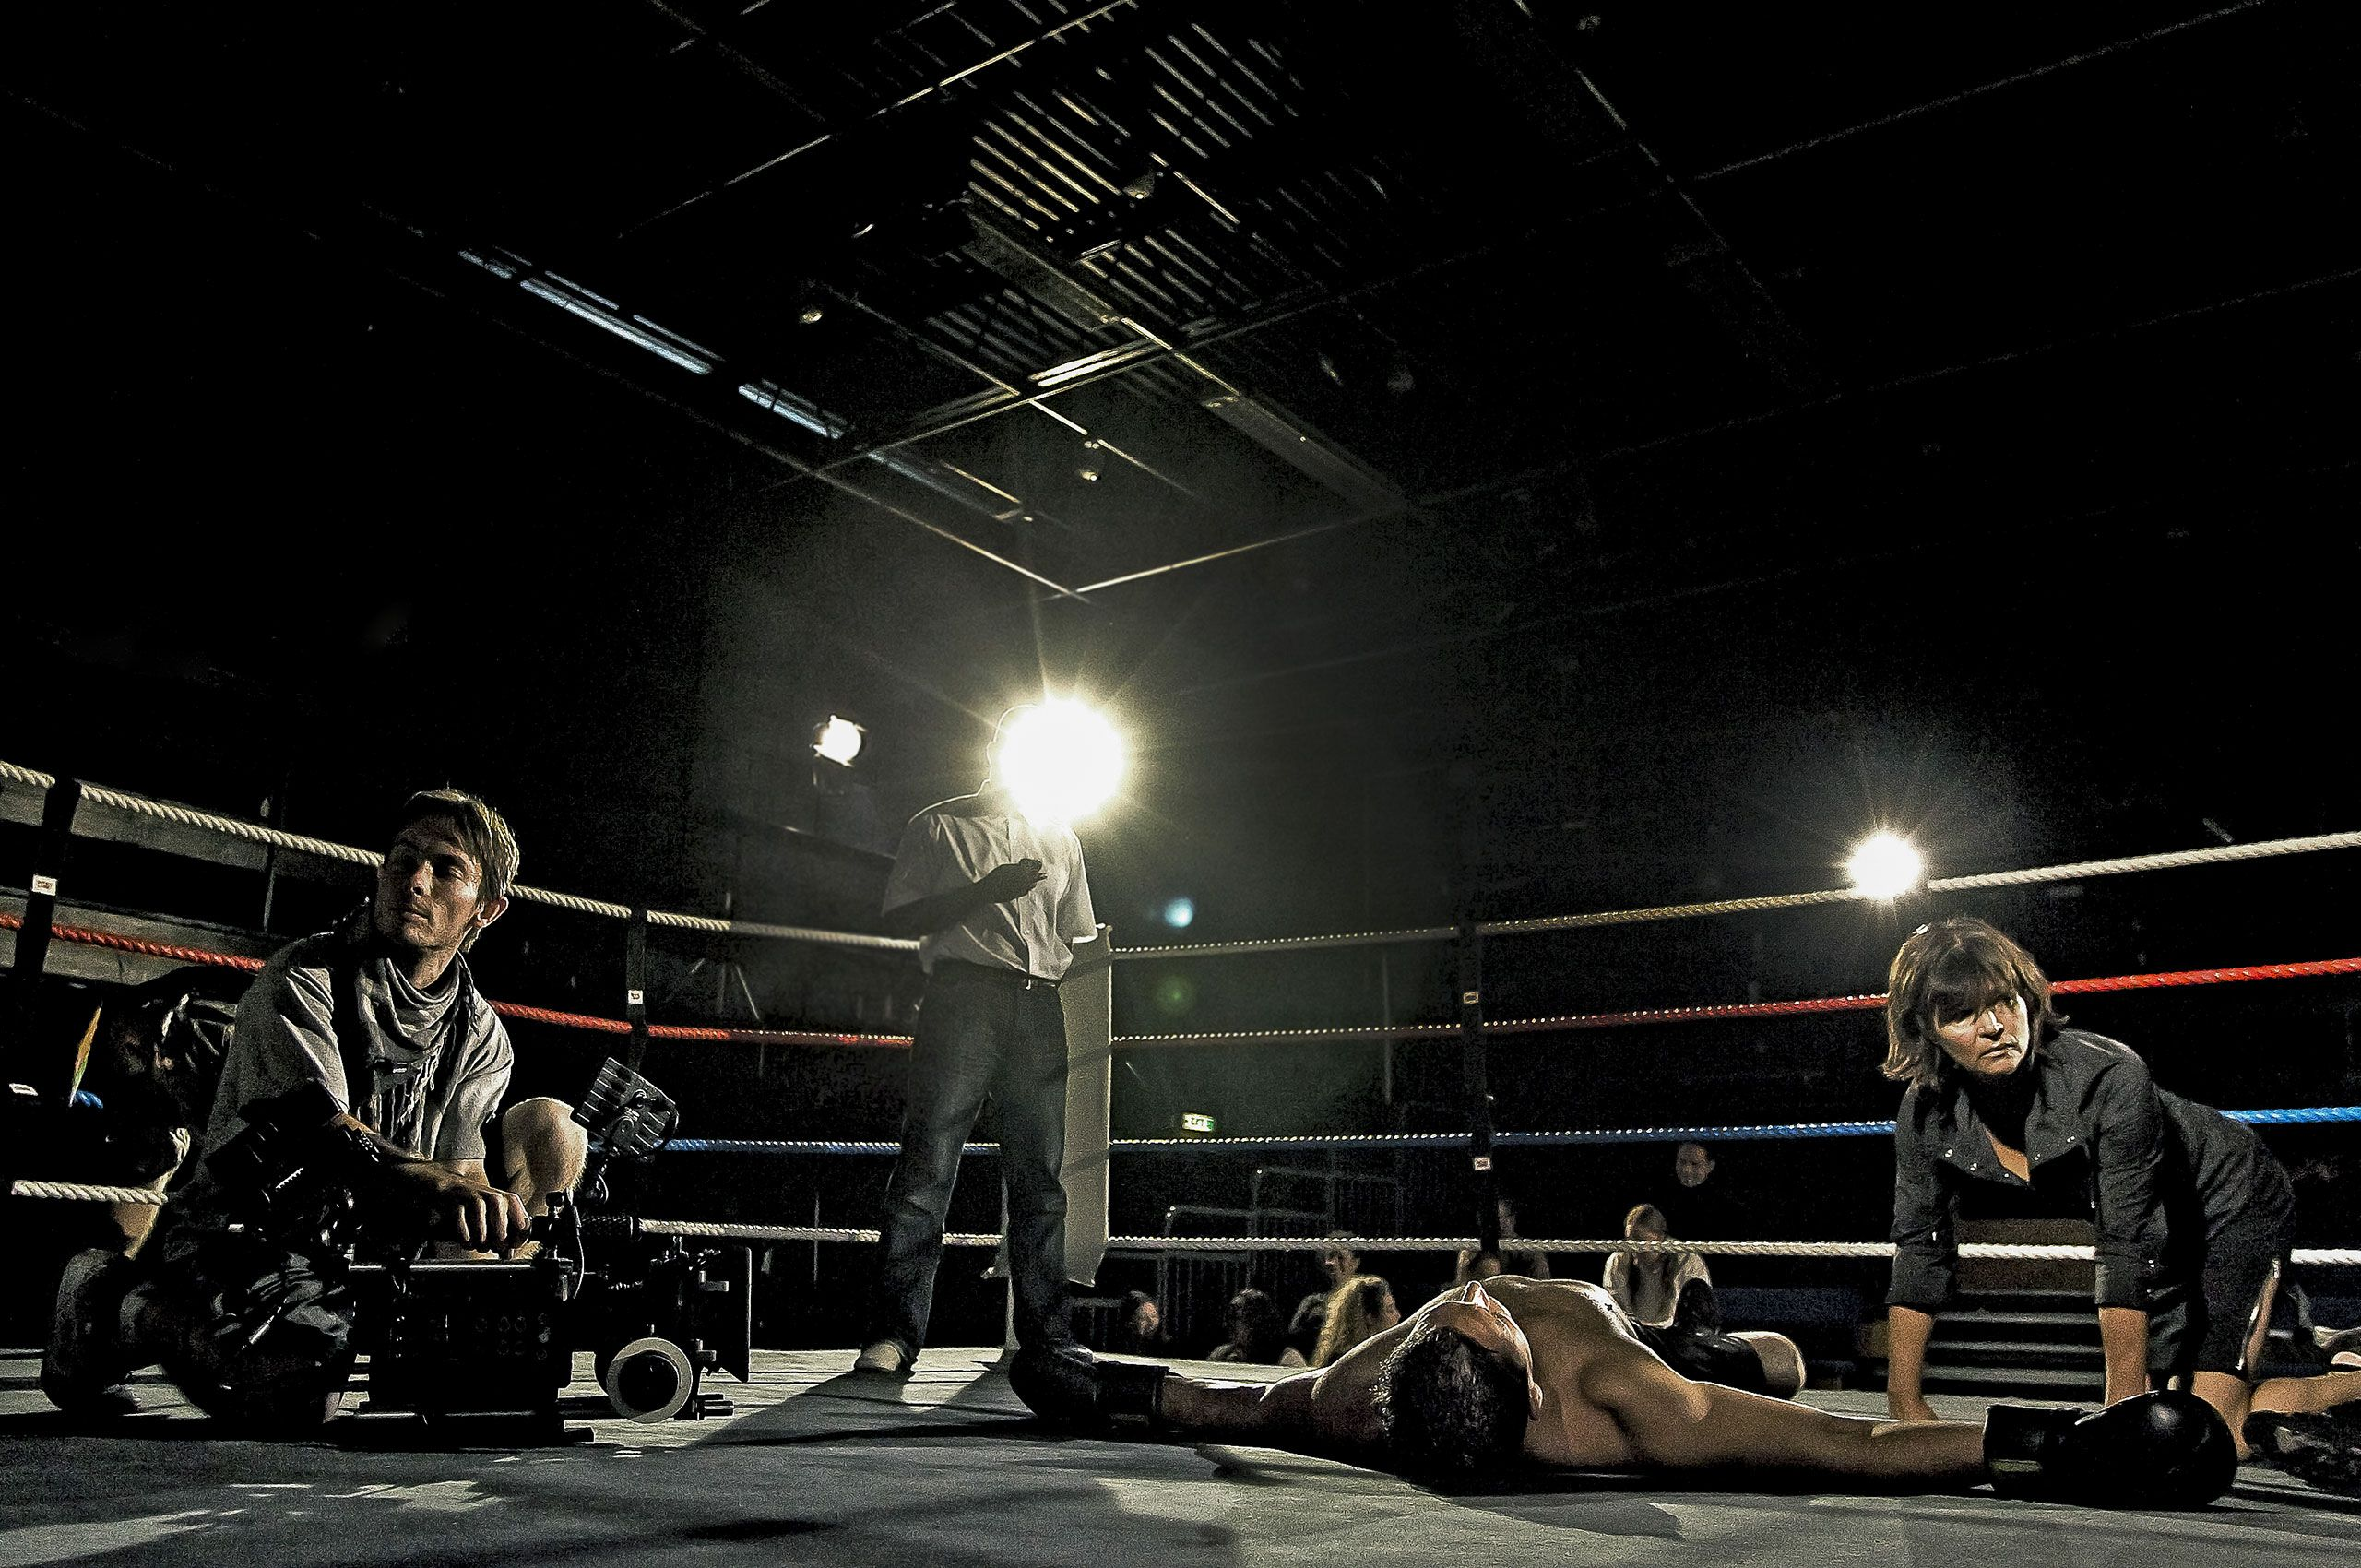 Boxing_Ring_Film_Behind_The-_Scenes.jpg